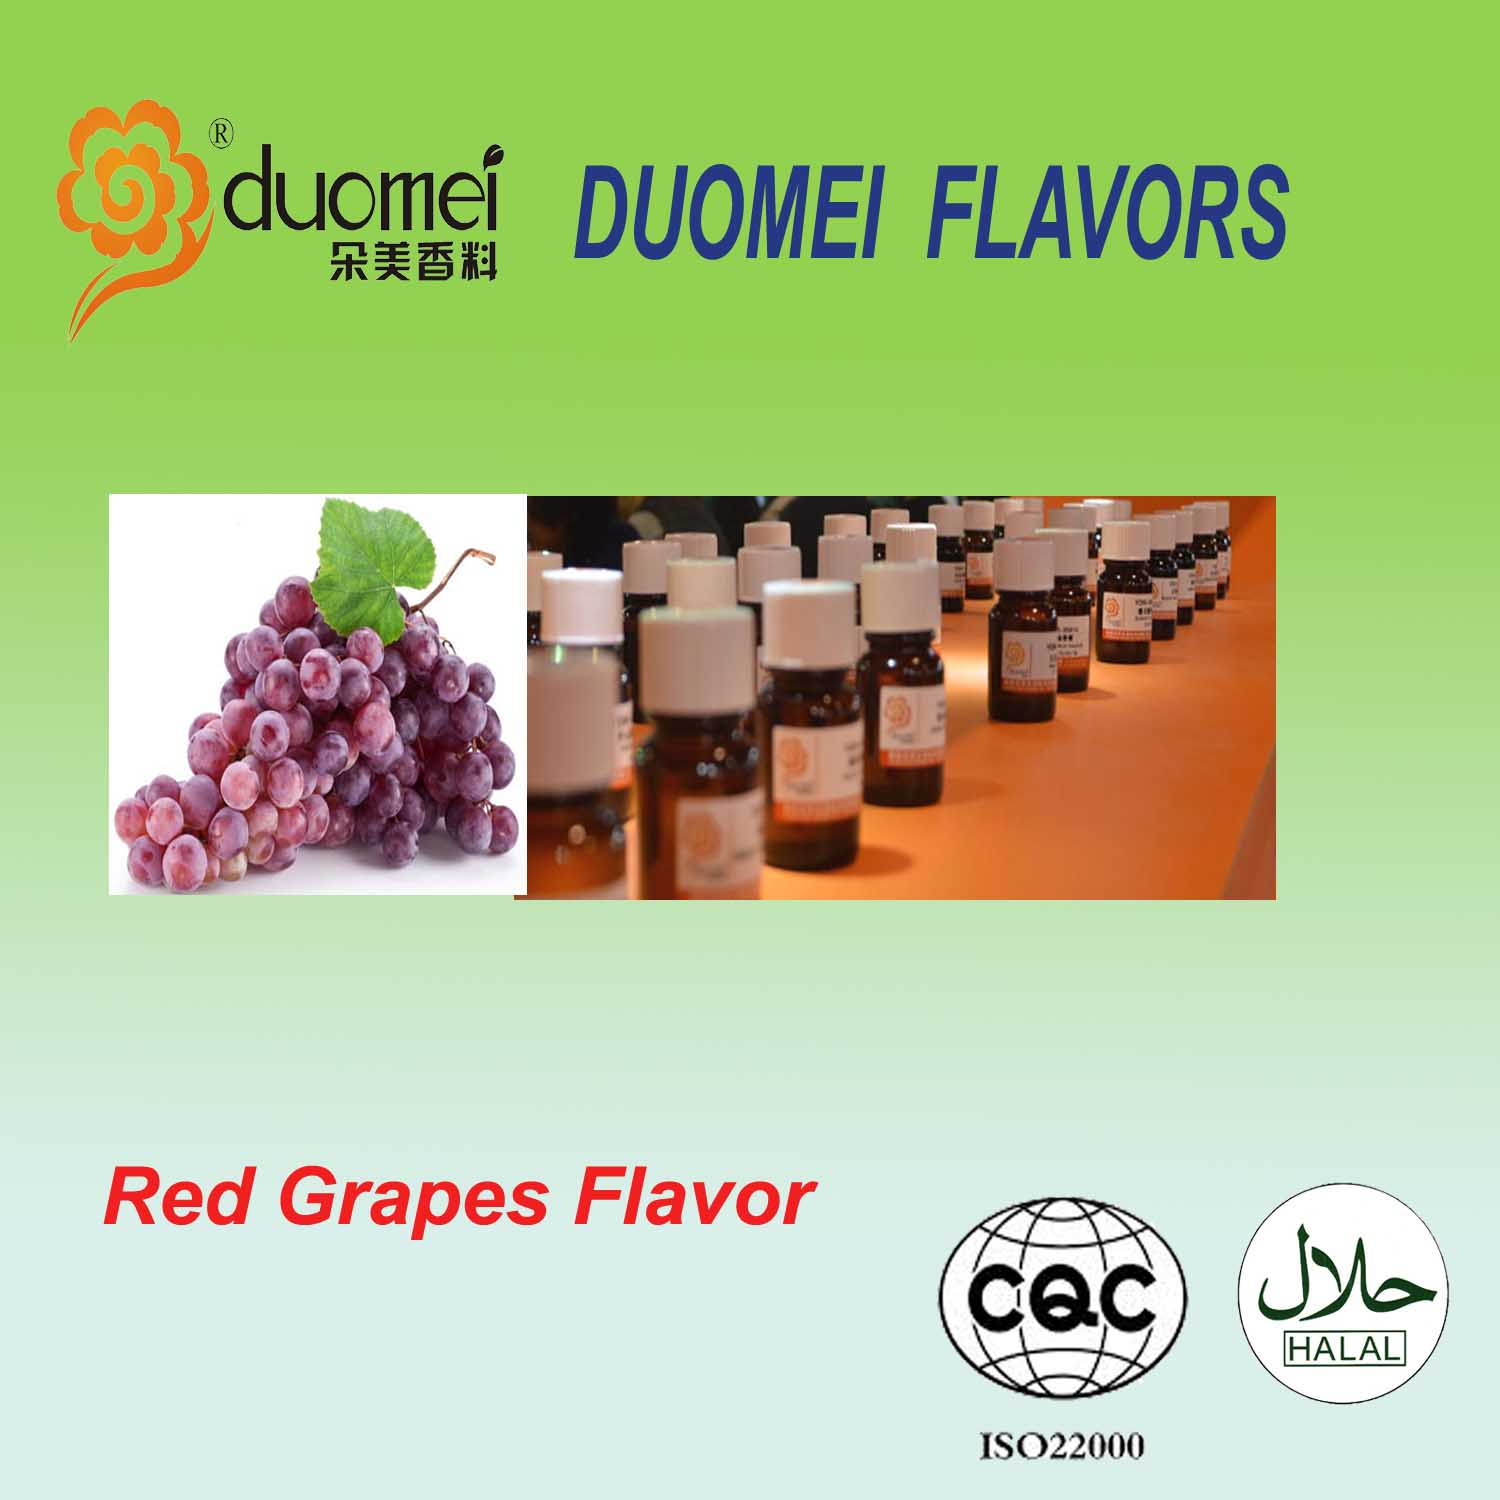 DM-21838 Red Grapes iff flavors with Rose Aroma for Candy use